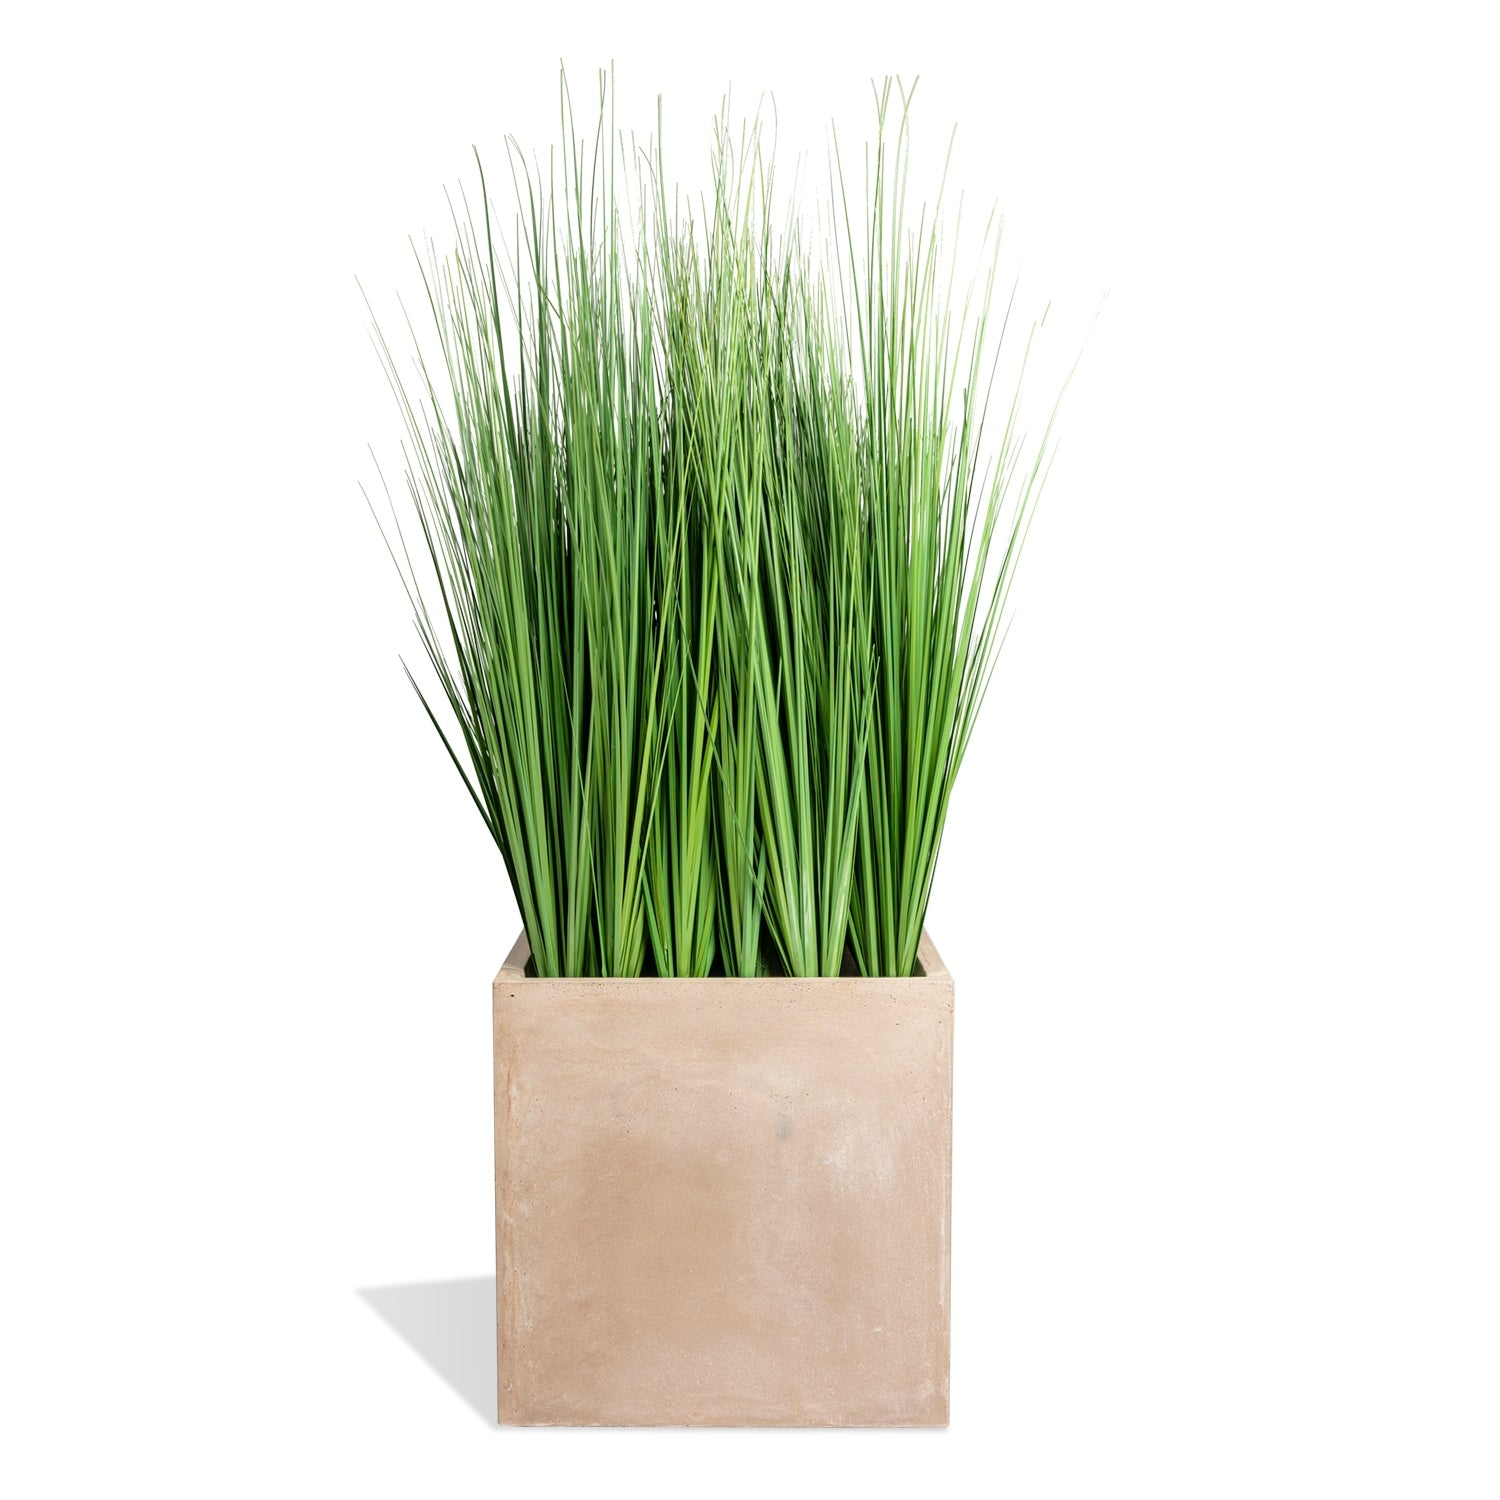 Grass: Outdoor in Urbano Square, LG